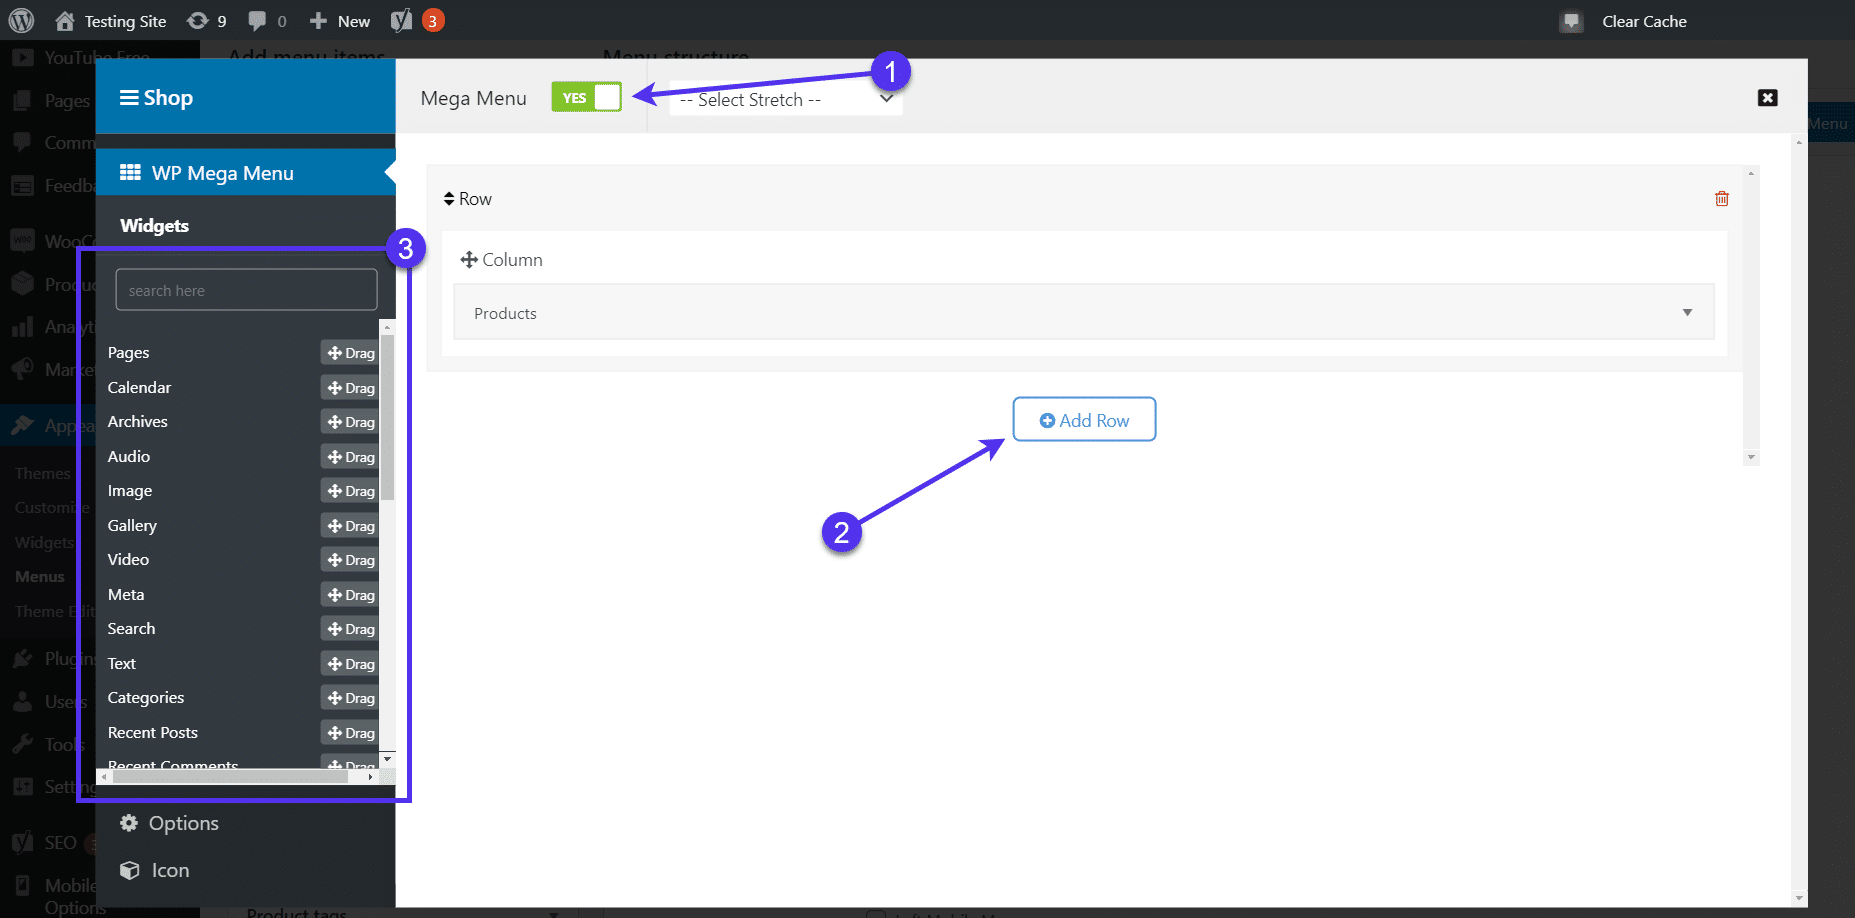 Click the 'Add Now' button